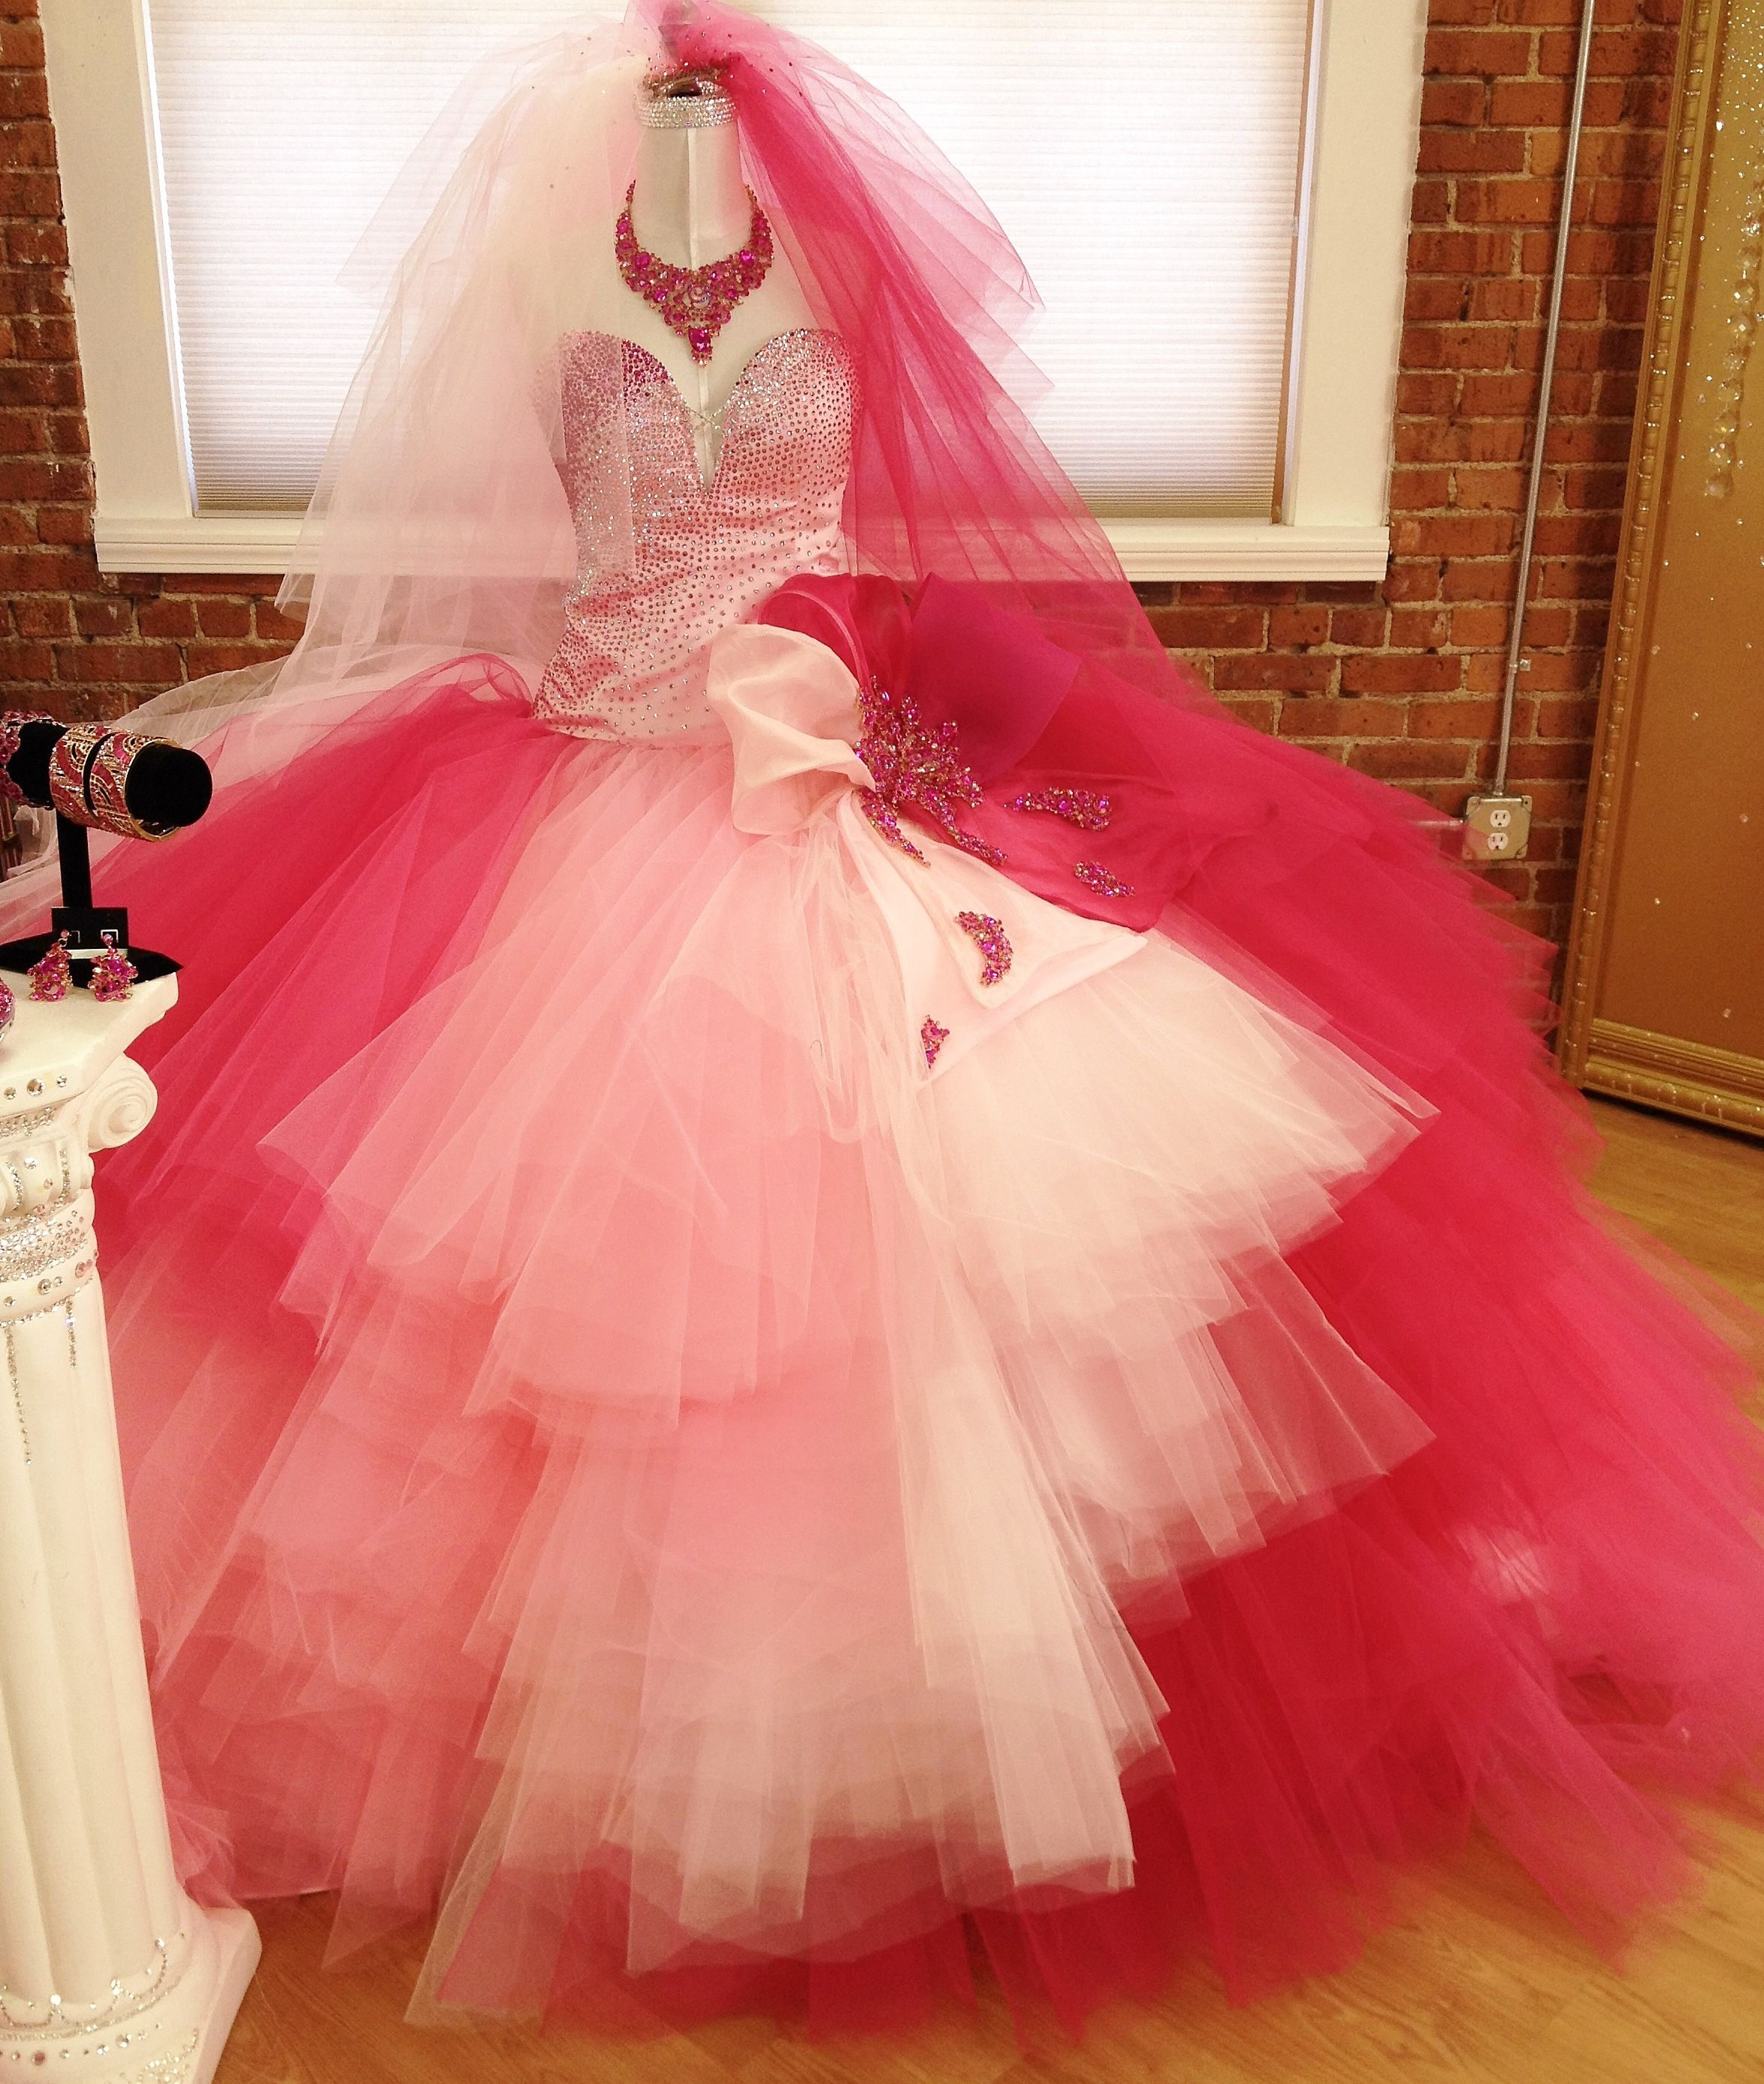 Pink ombré gypsy wedding dress by crystal couture designer Sondra ...